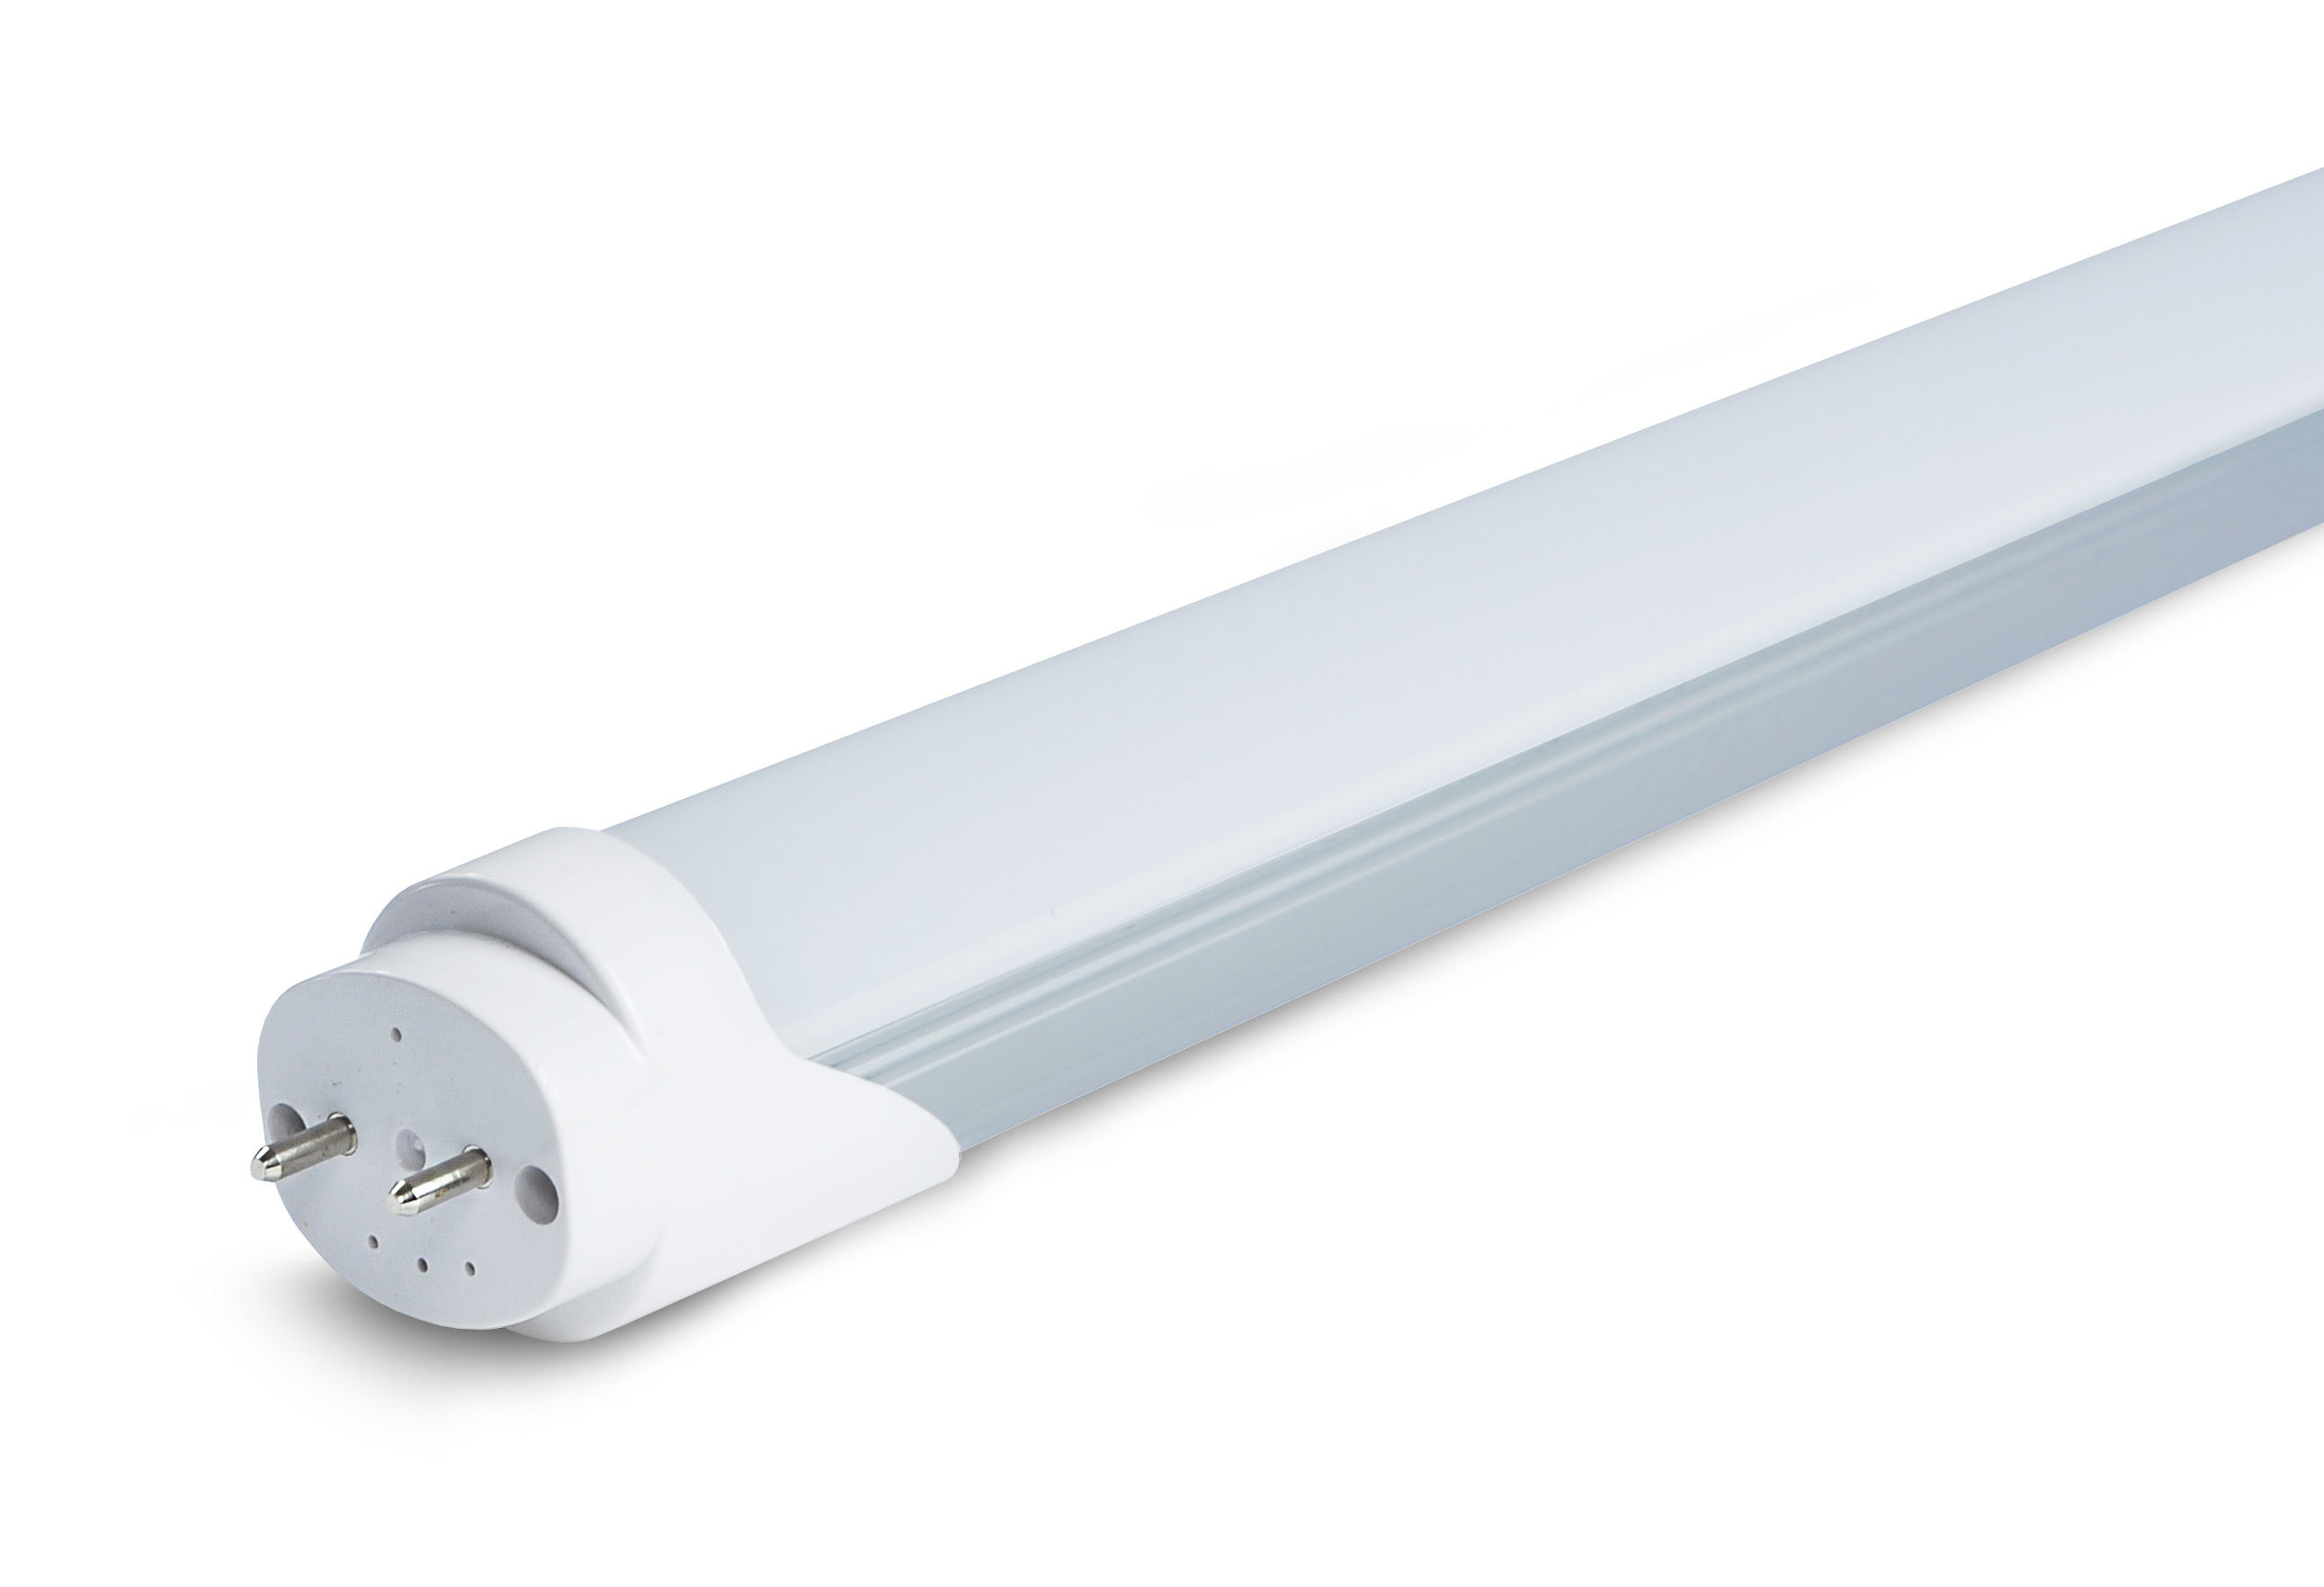 LED Solution LED zářivka 150cm 24W 140lm/W Premium ZAR150CM24W